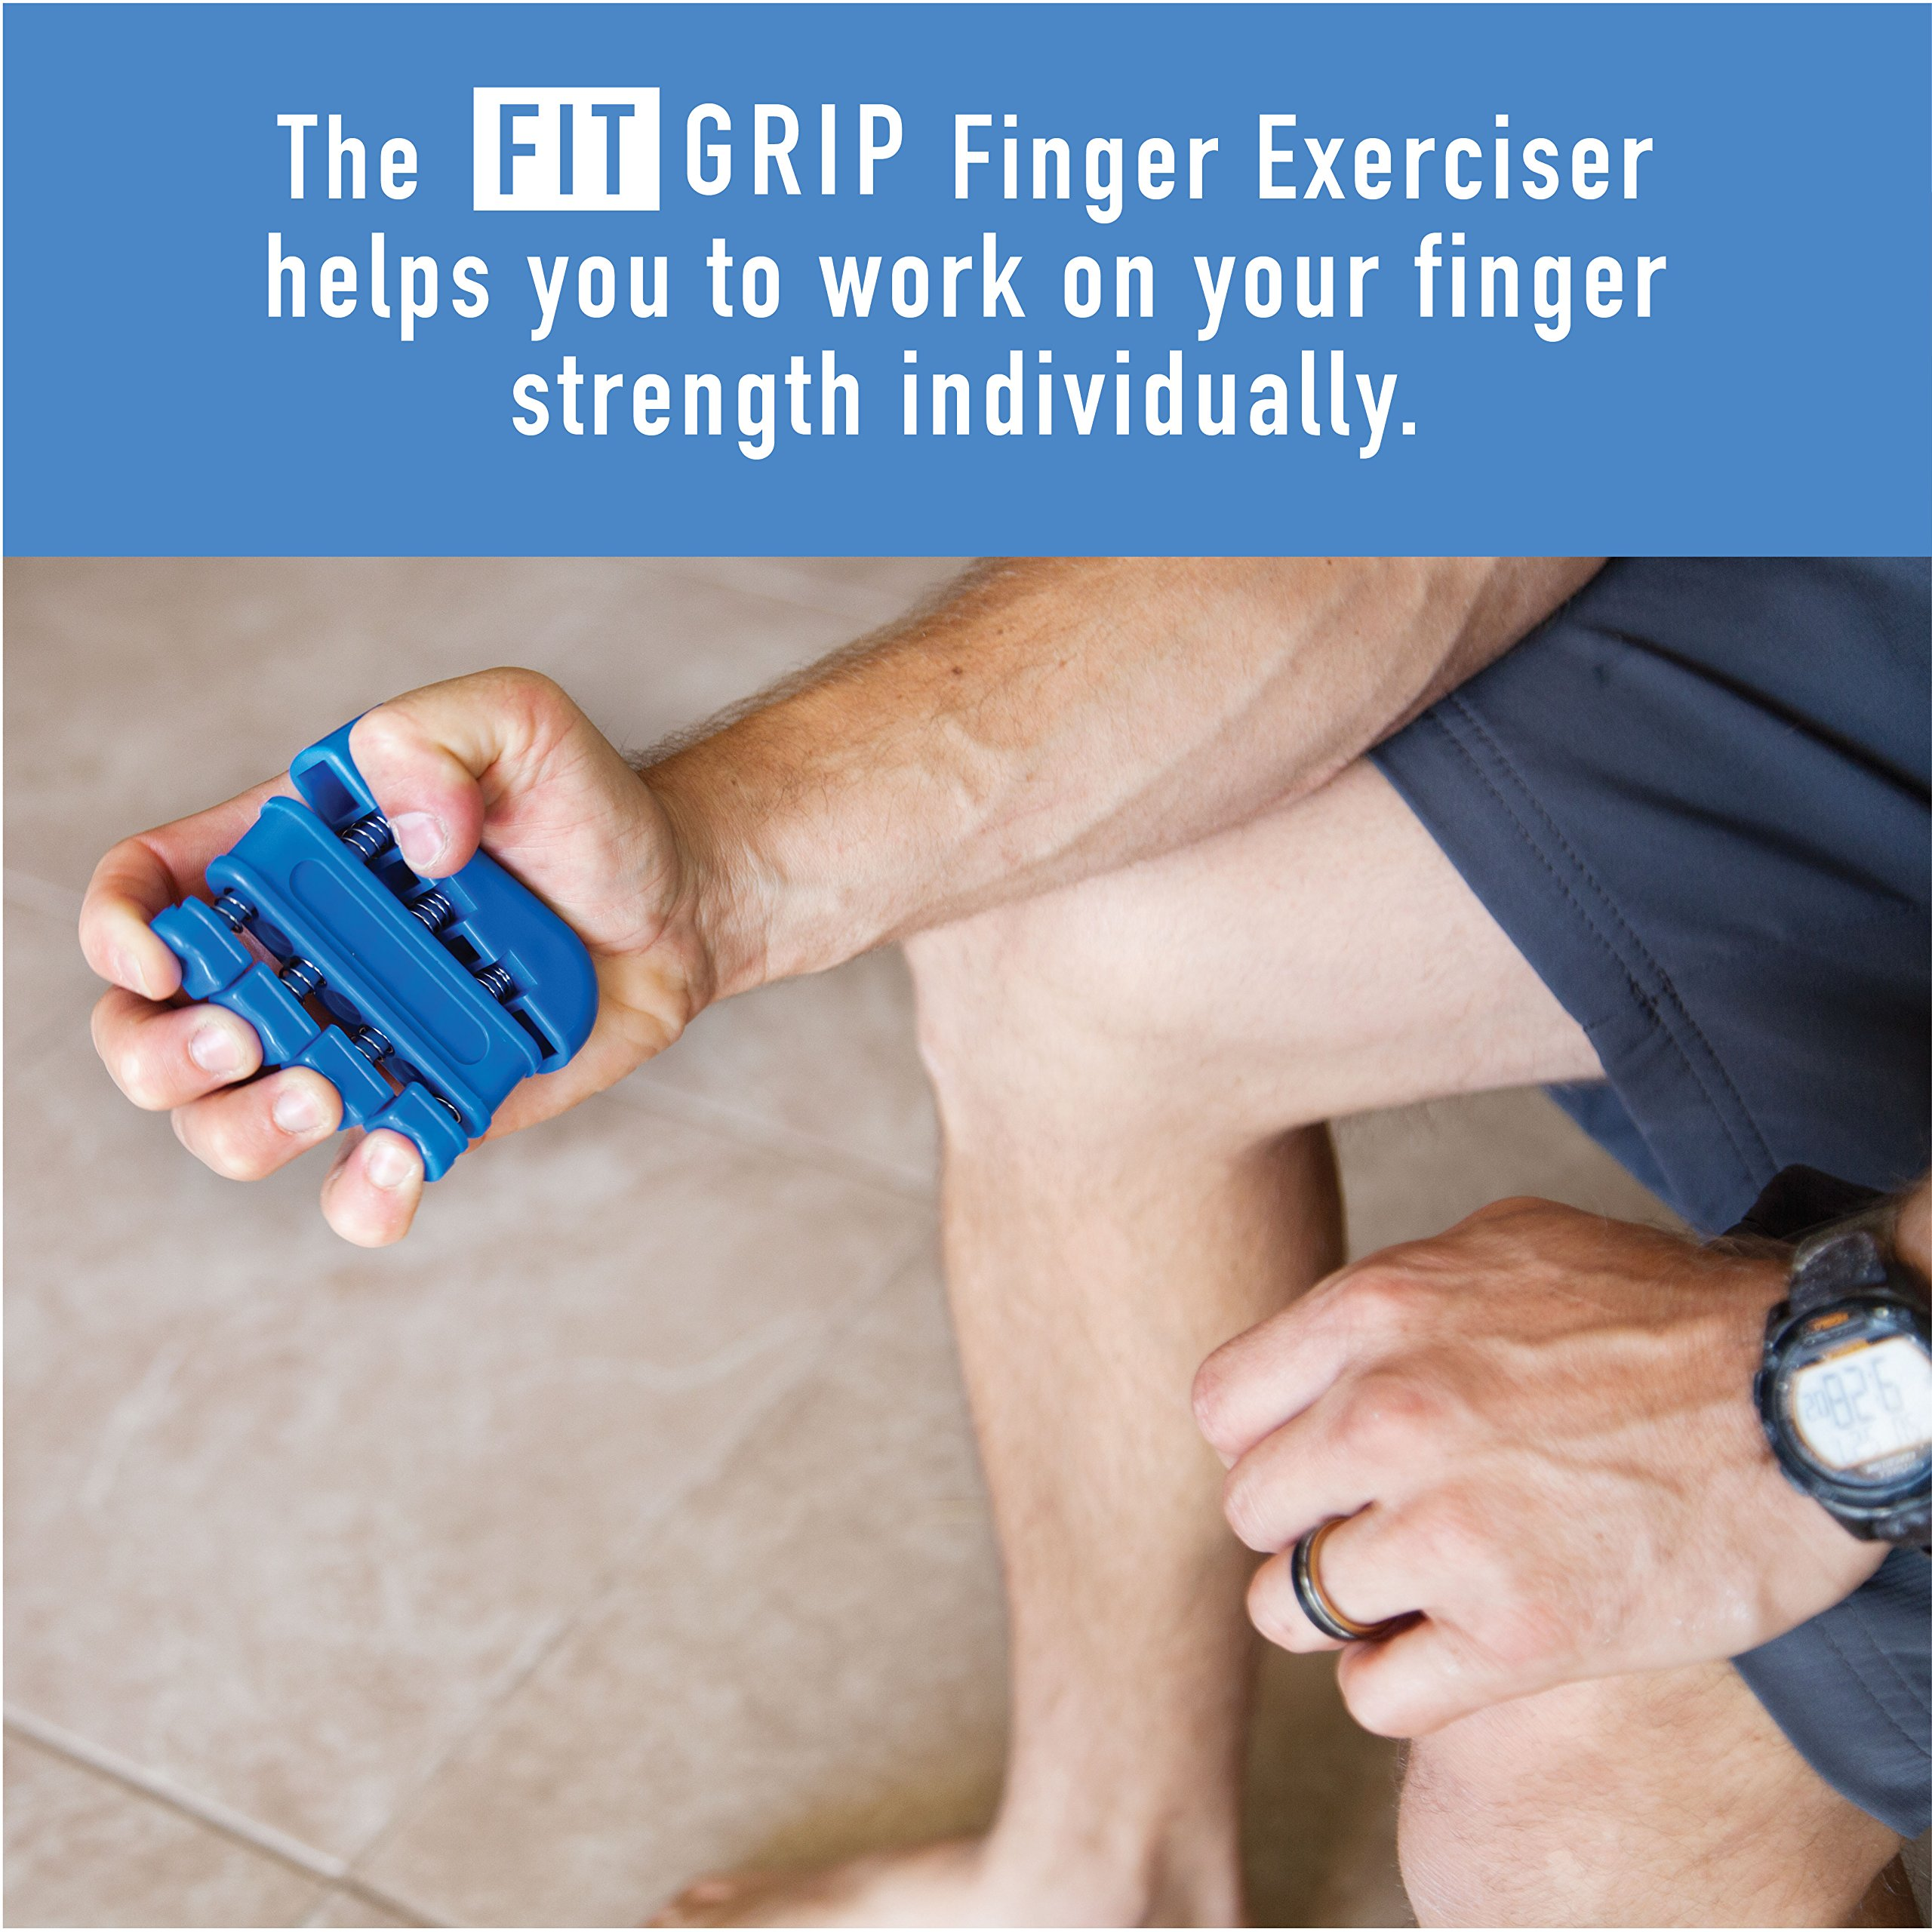 Hand Grip Strength and Forearm Trainer 4-Pack Bundle: Resistance Grip Strengthener, Finger Trainer, Finger Exerciser Stretcher, Grip Ring | Ideal for Athletes, Therapy for Arthritis, Carpal Tunnel by Fit Grip (Image #4)